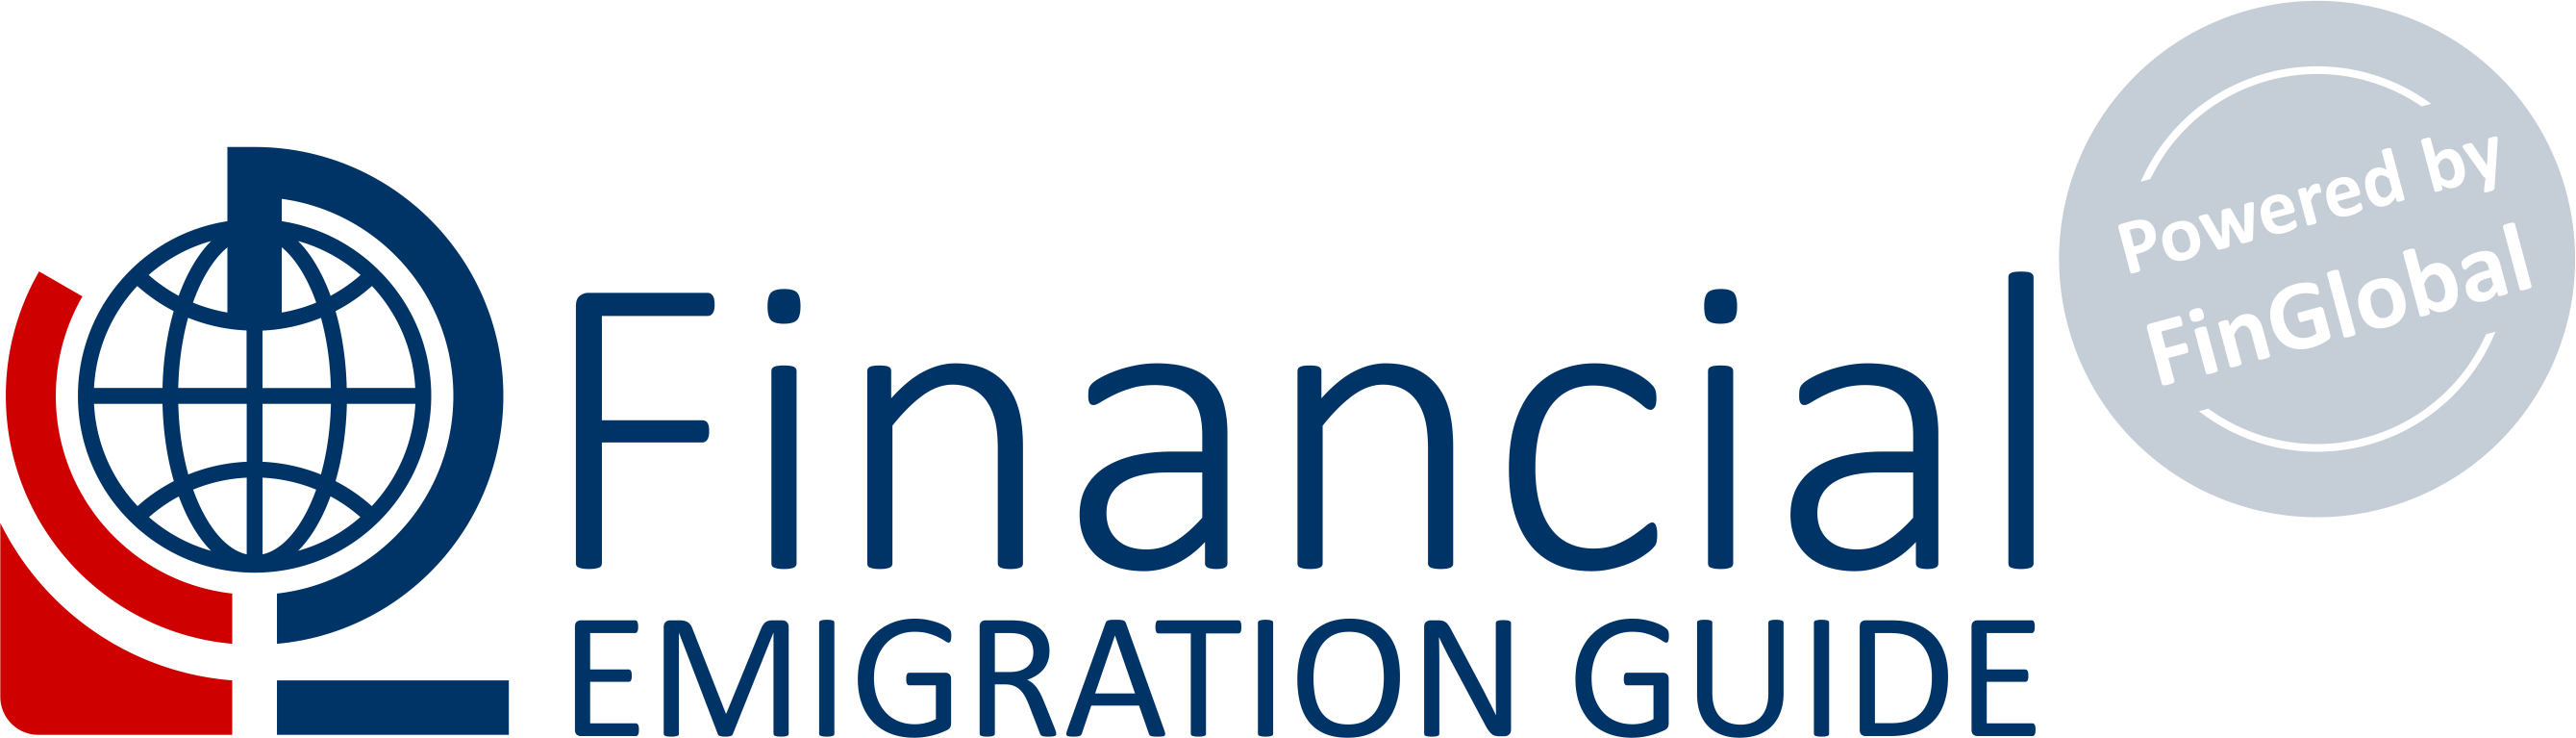 Financial Emigration Guide